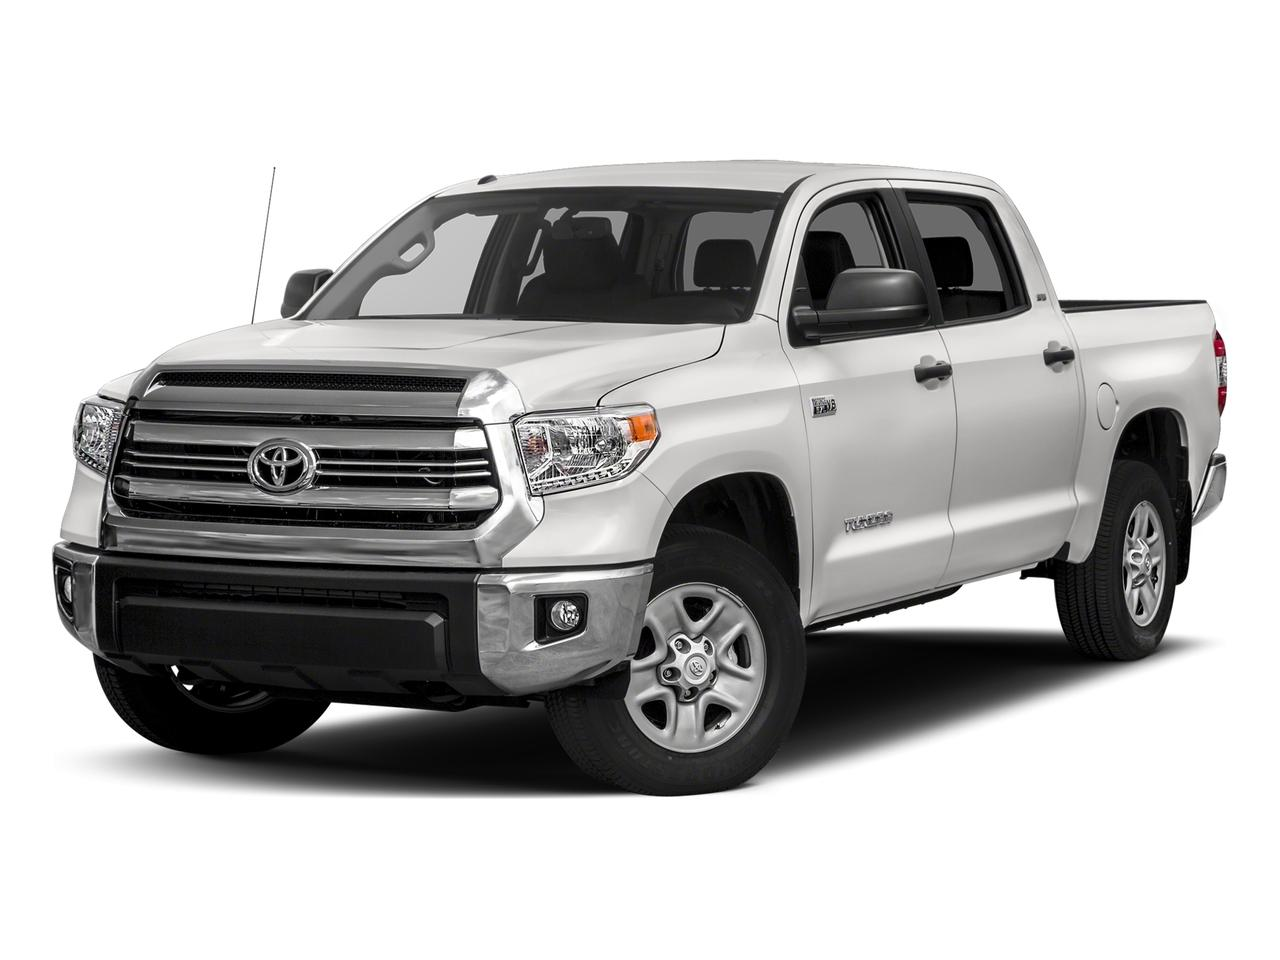 2017 Toyota Tundra 4WD Vehicle Photo in Riverside, CA 92504